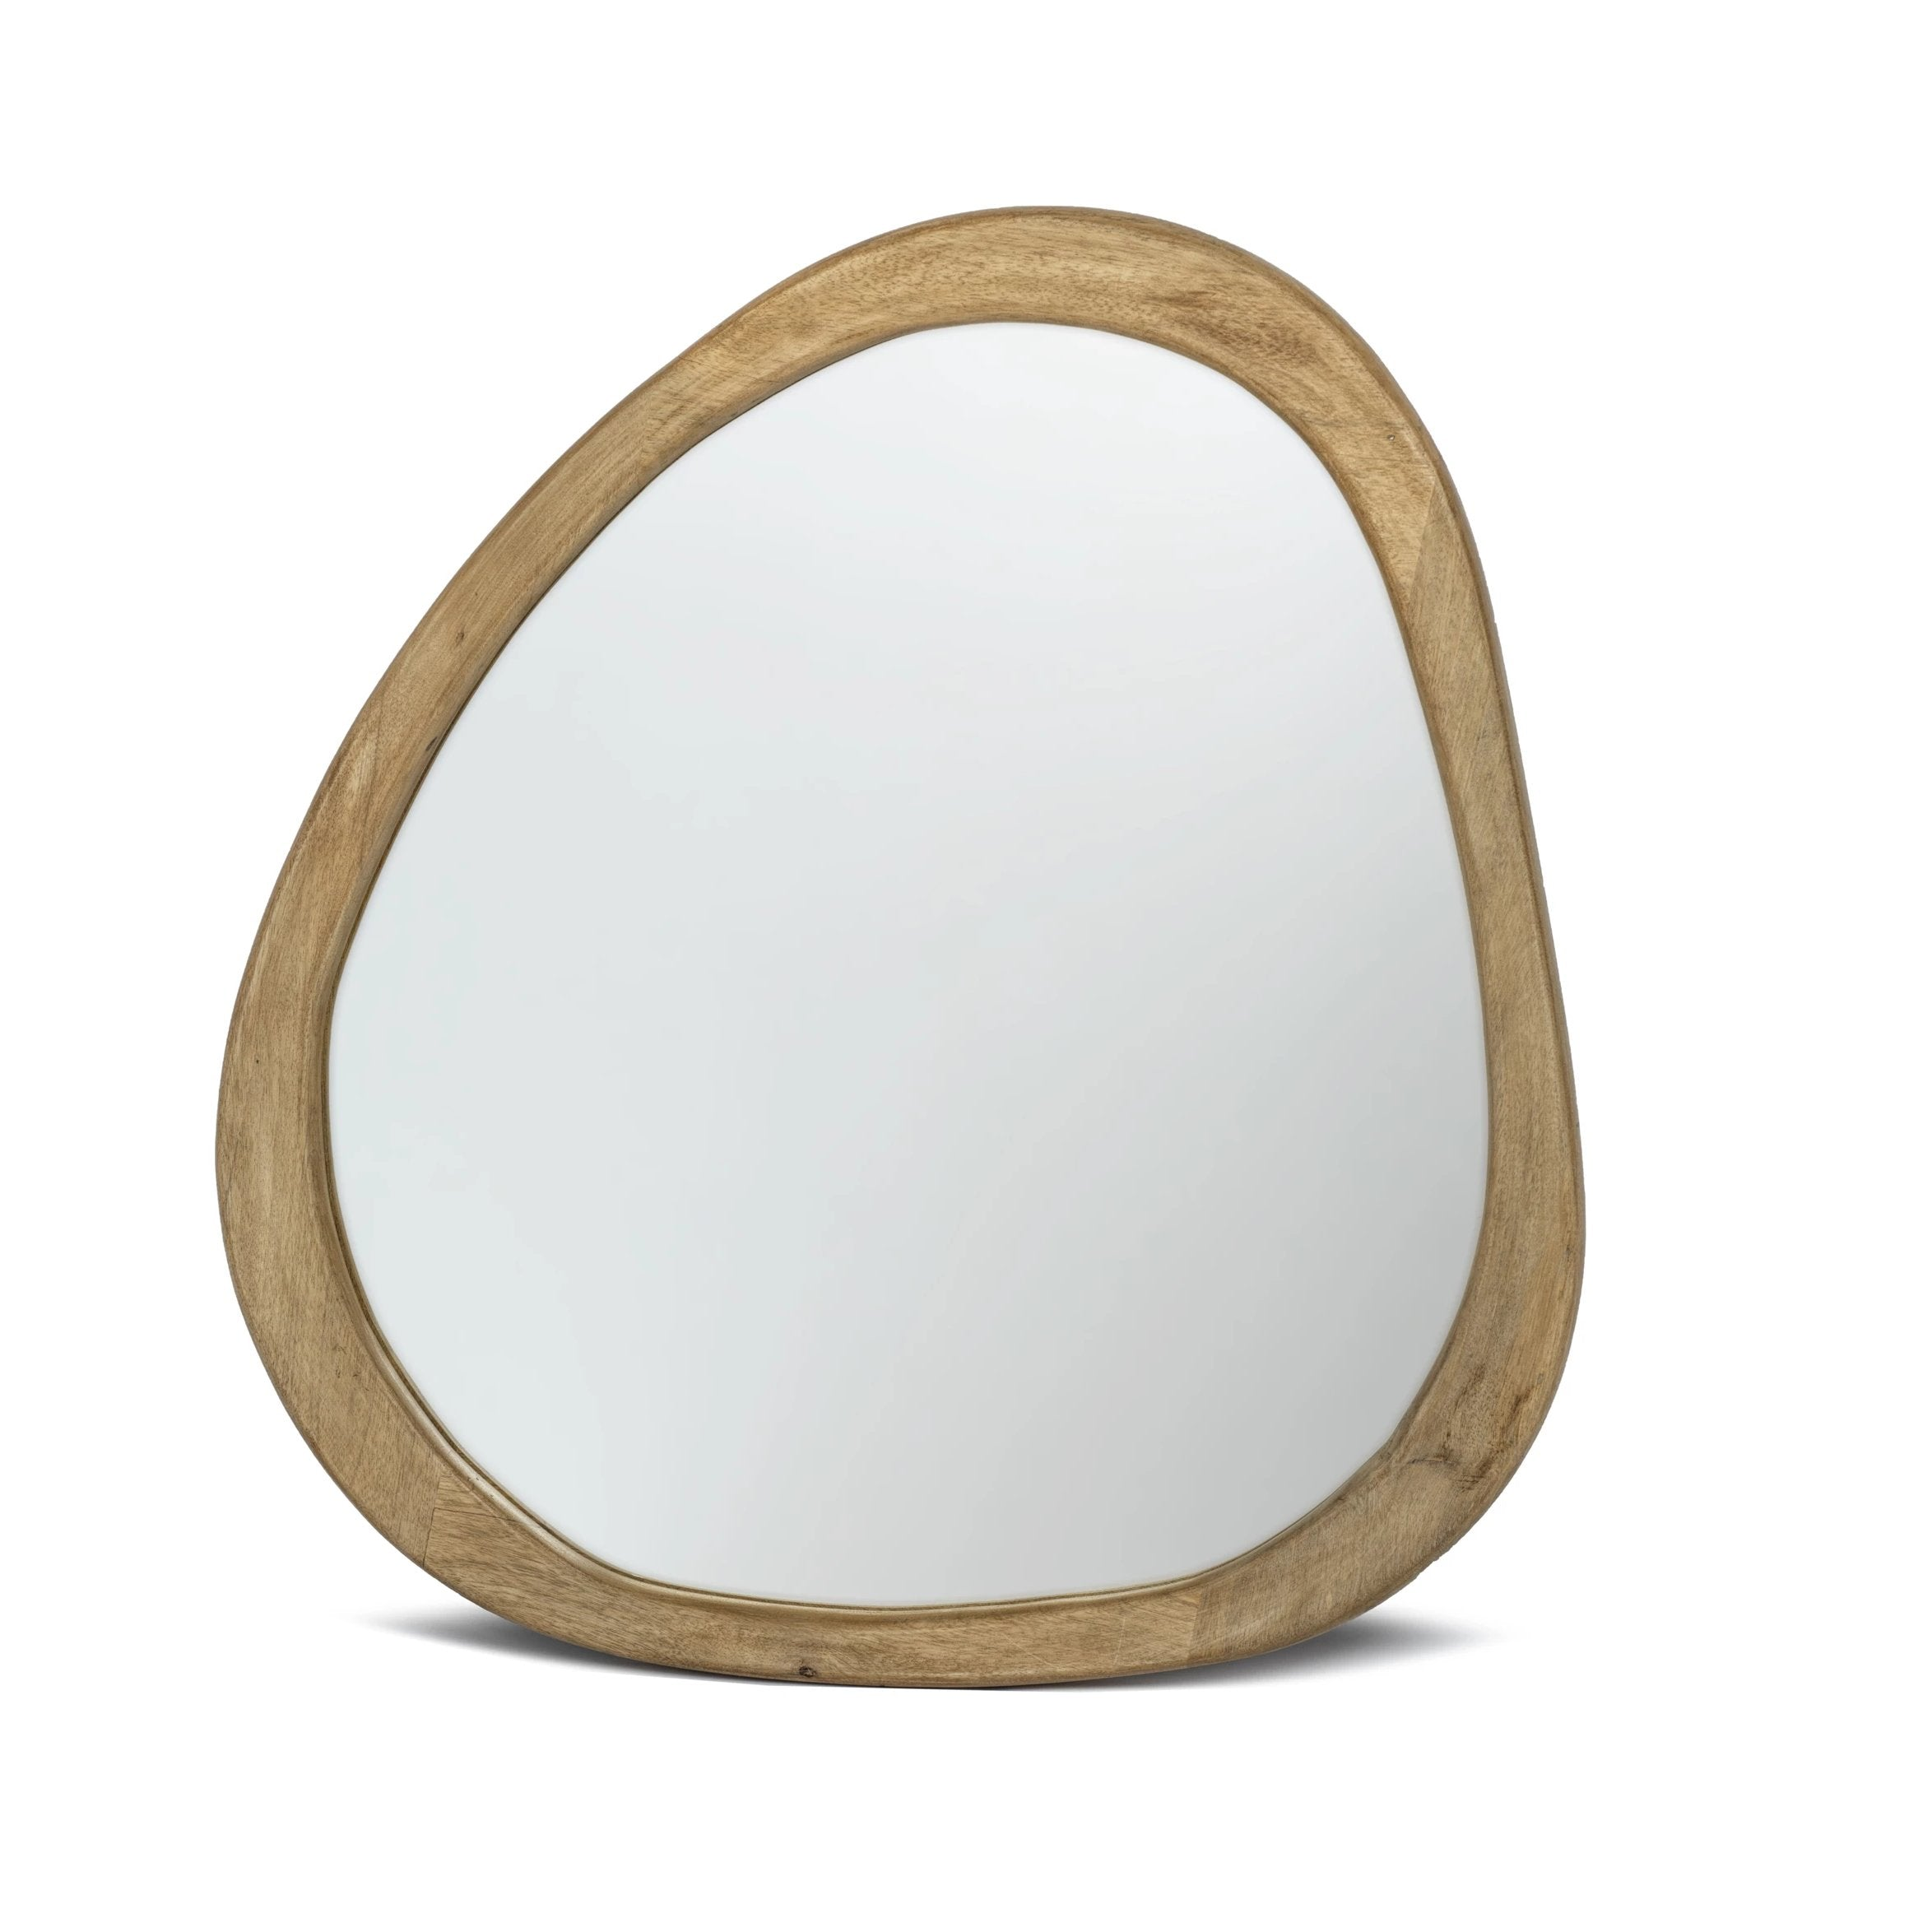 Organic Shape Wall Mirror - CARLYLE AVENUE